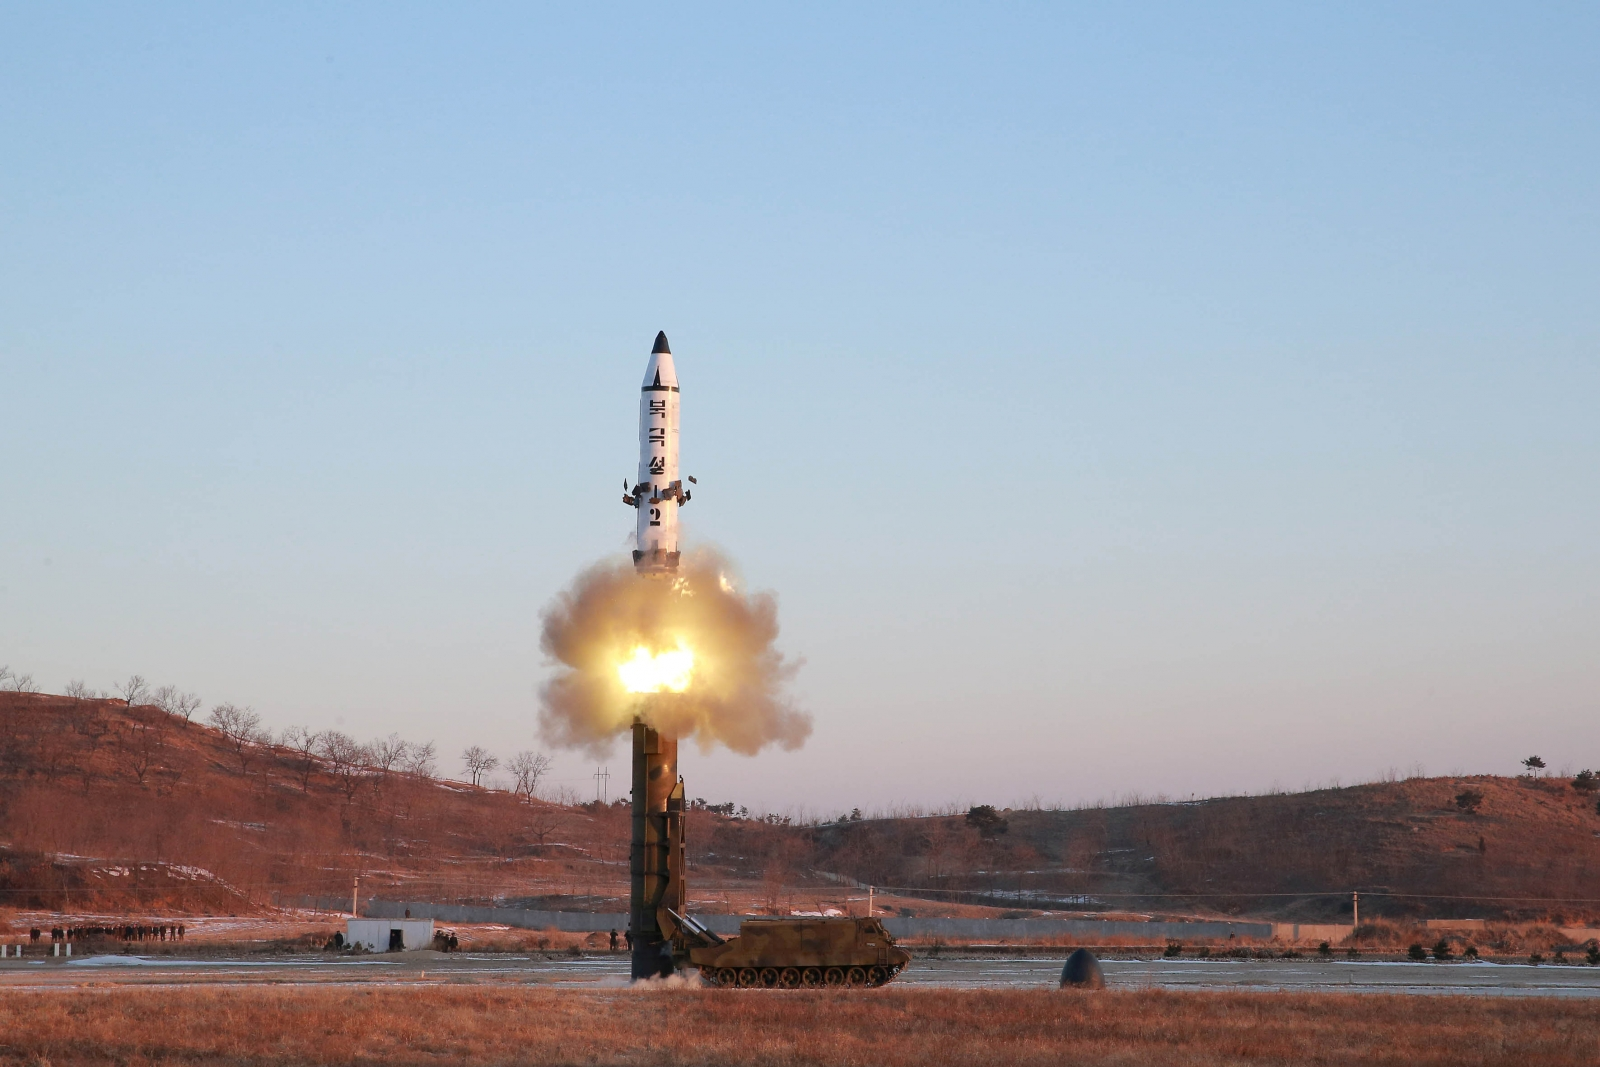 South Korea Fires Warning Shots At Unidentified Object From North Korea